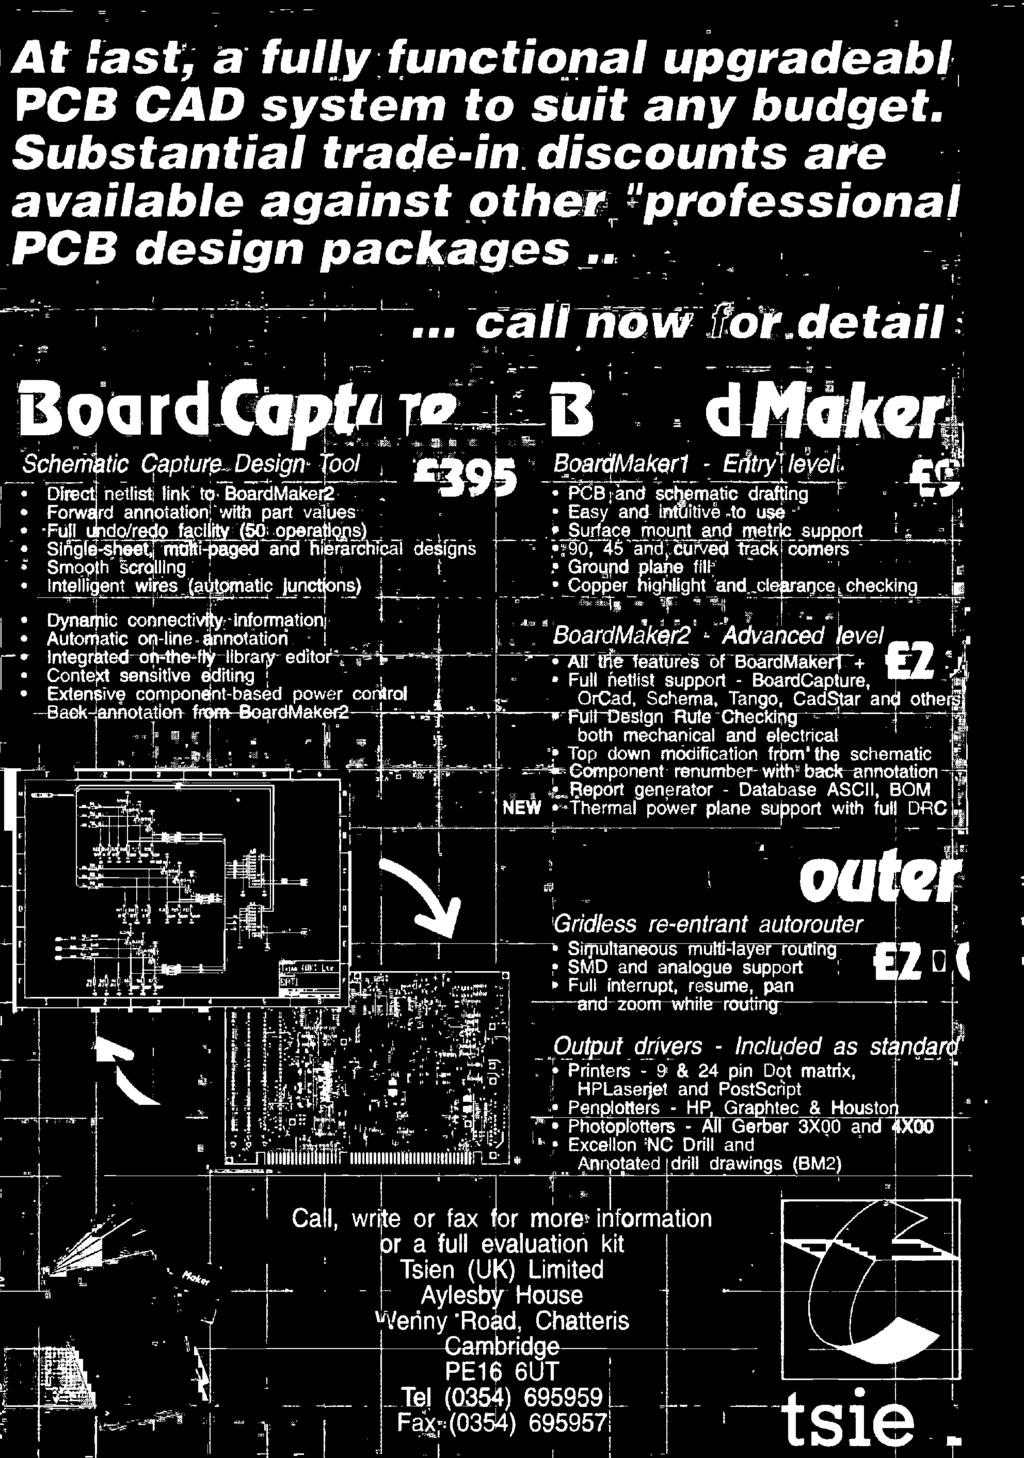 Pc Clin Electronics Tom Or Ws Simu Electronic Circuit An Stripboard Veroboard Matrix Board Design Software Electrical 90 45 And Curved Track Corners Ground Plane Fill Copper Highlight Clearance Checking